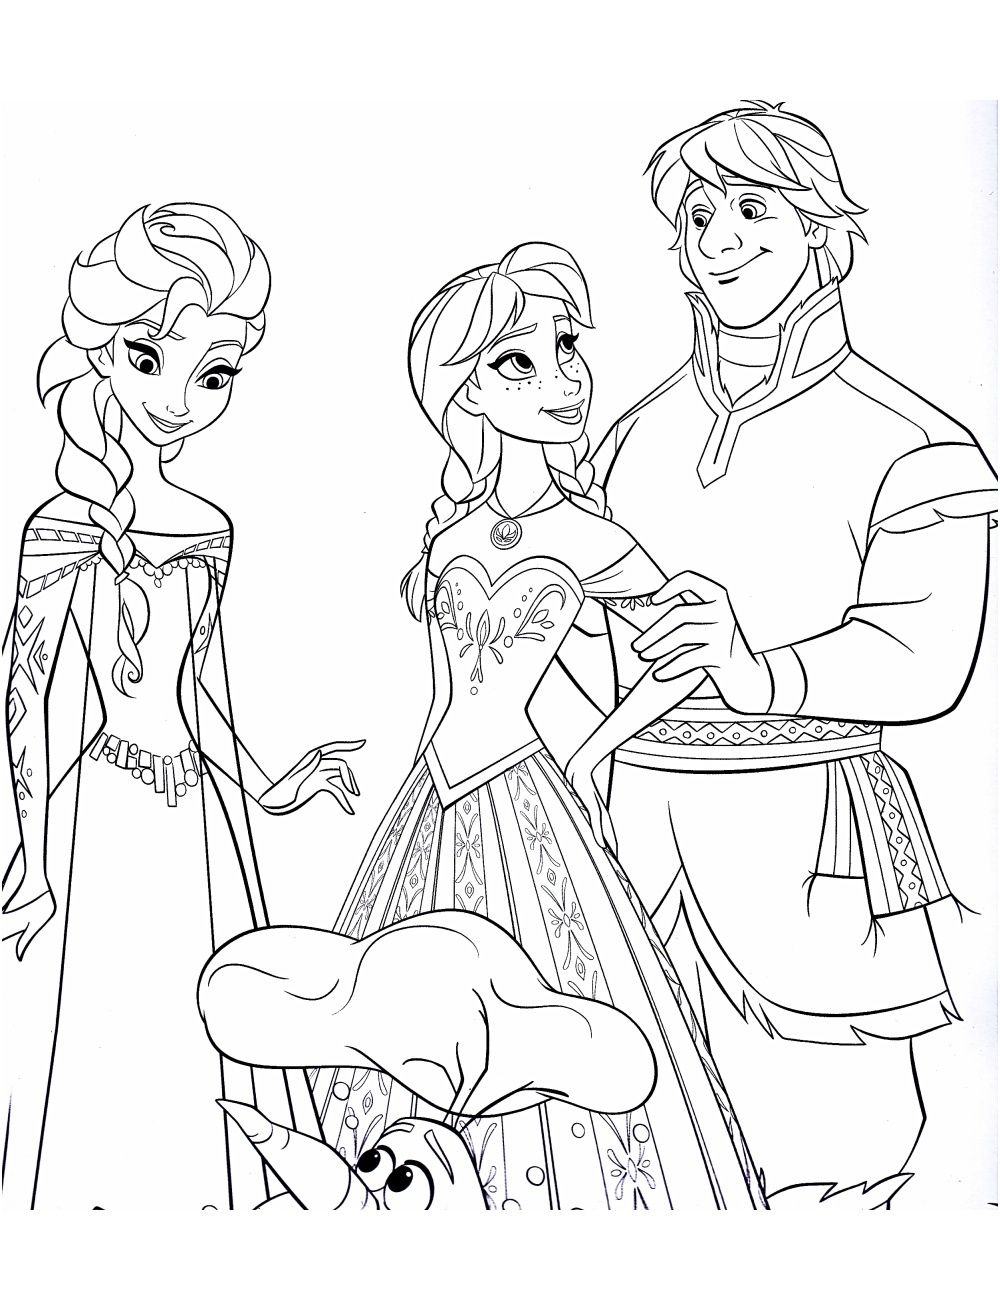 12 Aimable Coloriage La Reine Des Neiges Pictures | Sketches, Zelda characters, Character